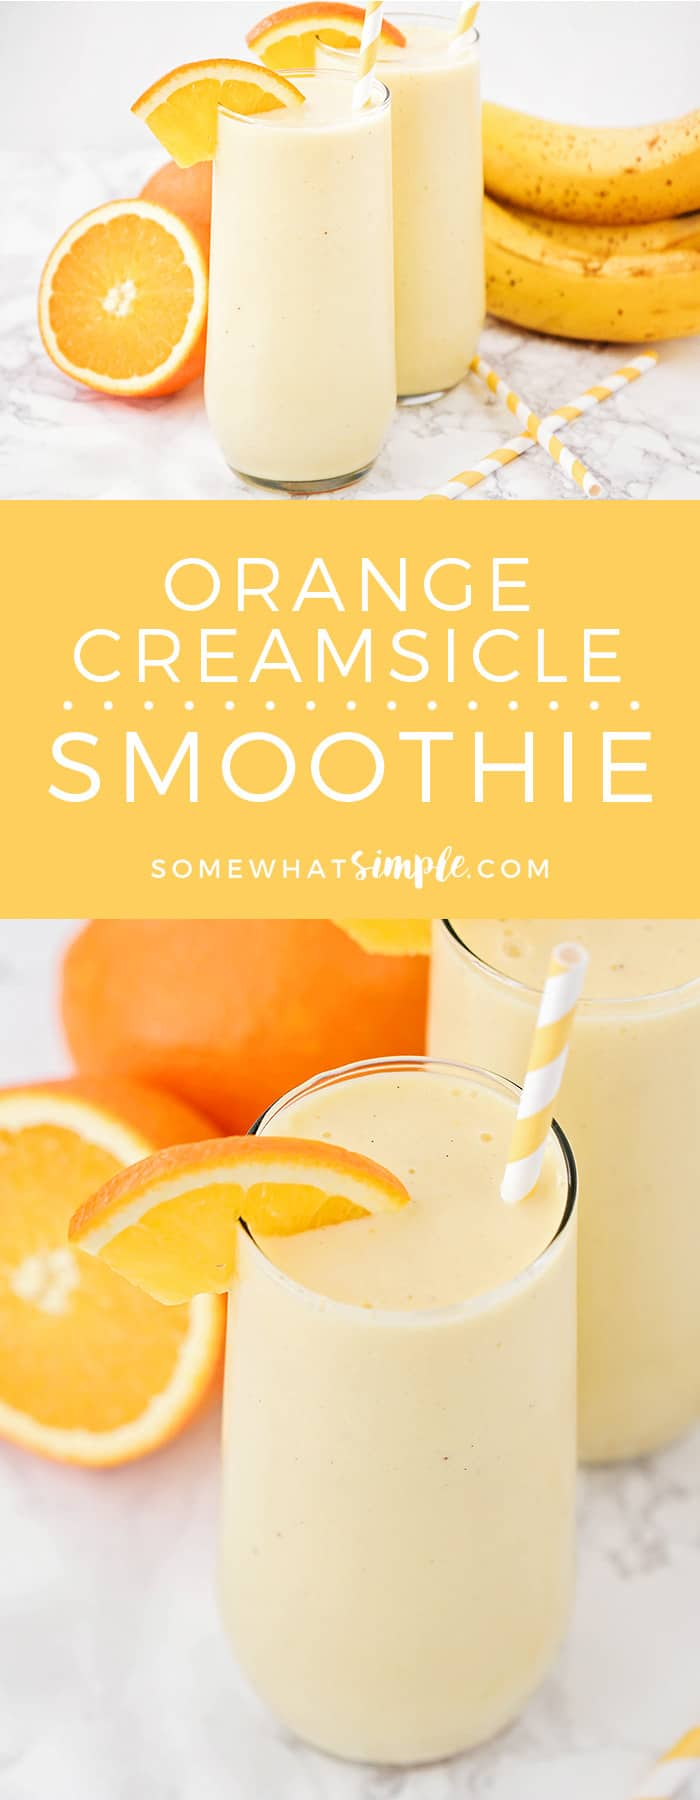 This sweet and refreshing orange creamsicle smoothie is perfect for an easy breakfast or afternoon snack! A healthy version of your favorite orange creamsicle drink - it is so flavorful, and totally delicious!